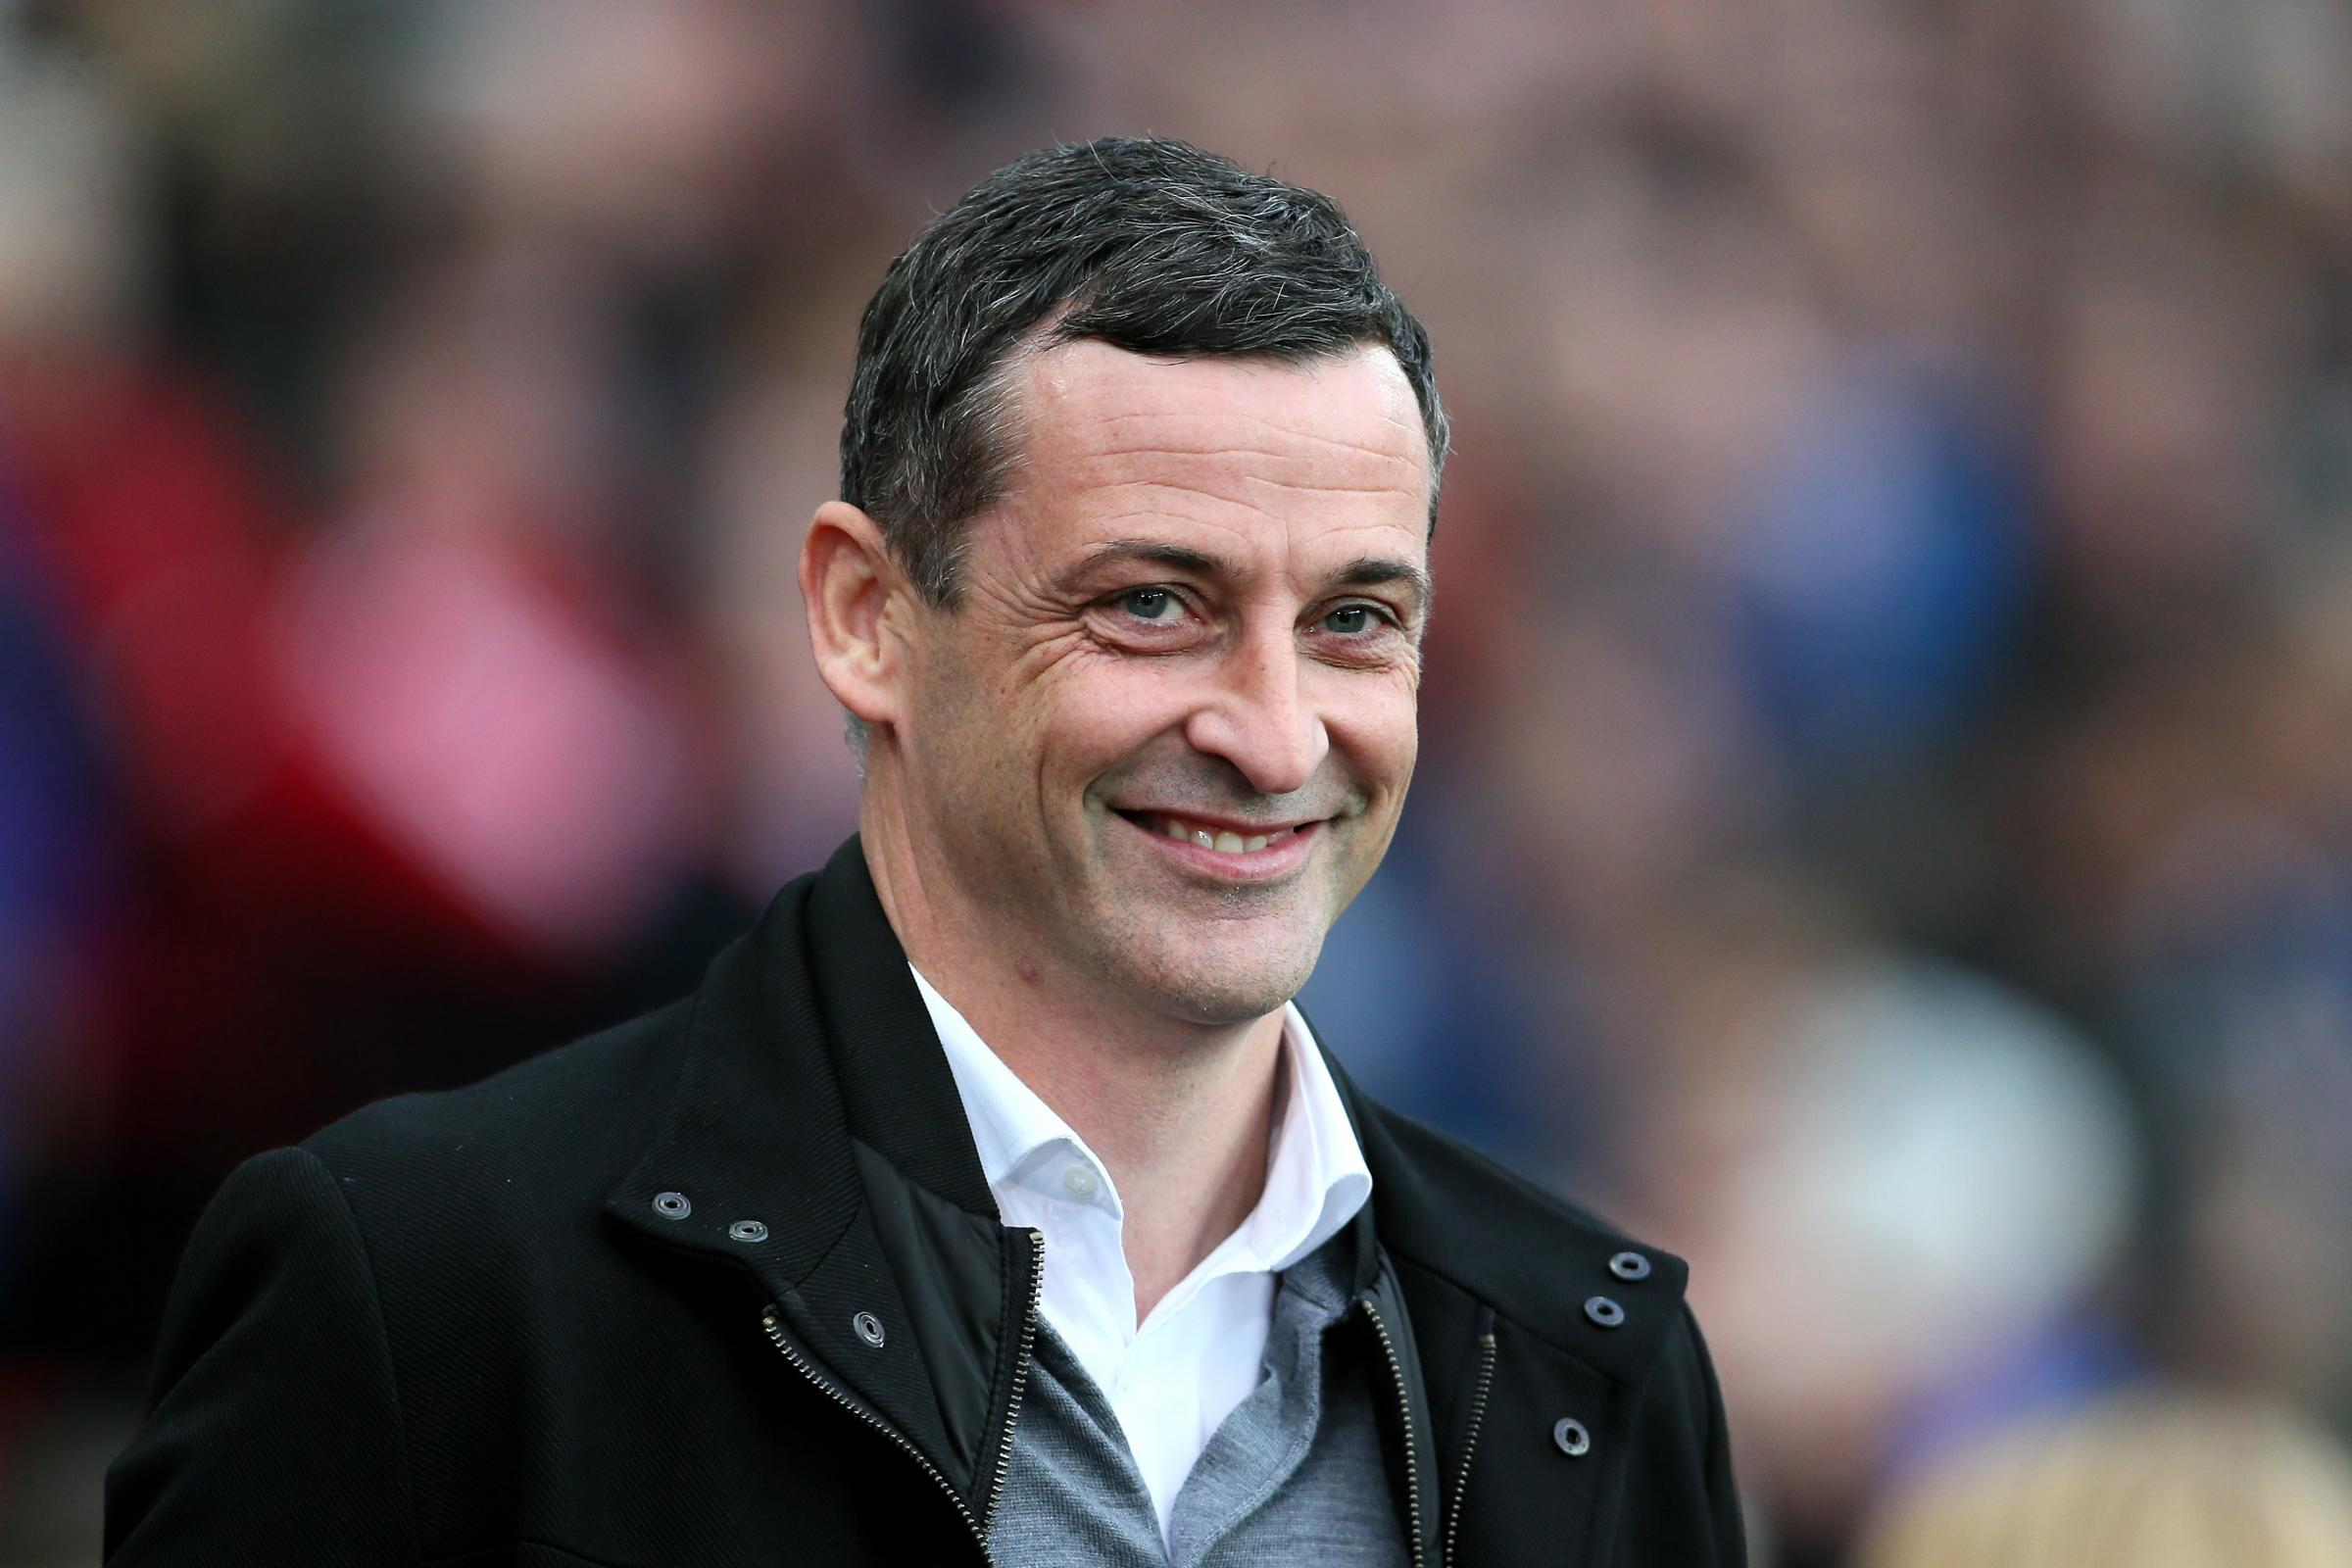 Sunderland could pip Celtic to appointing John Park as director of football to work with Jack Ross